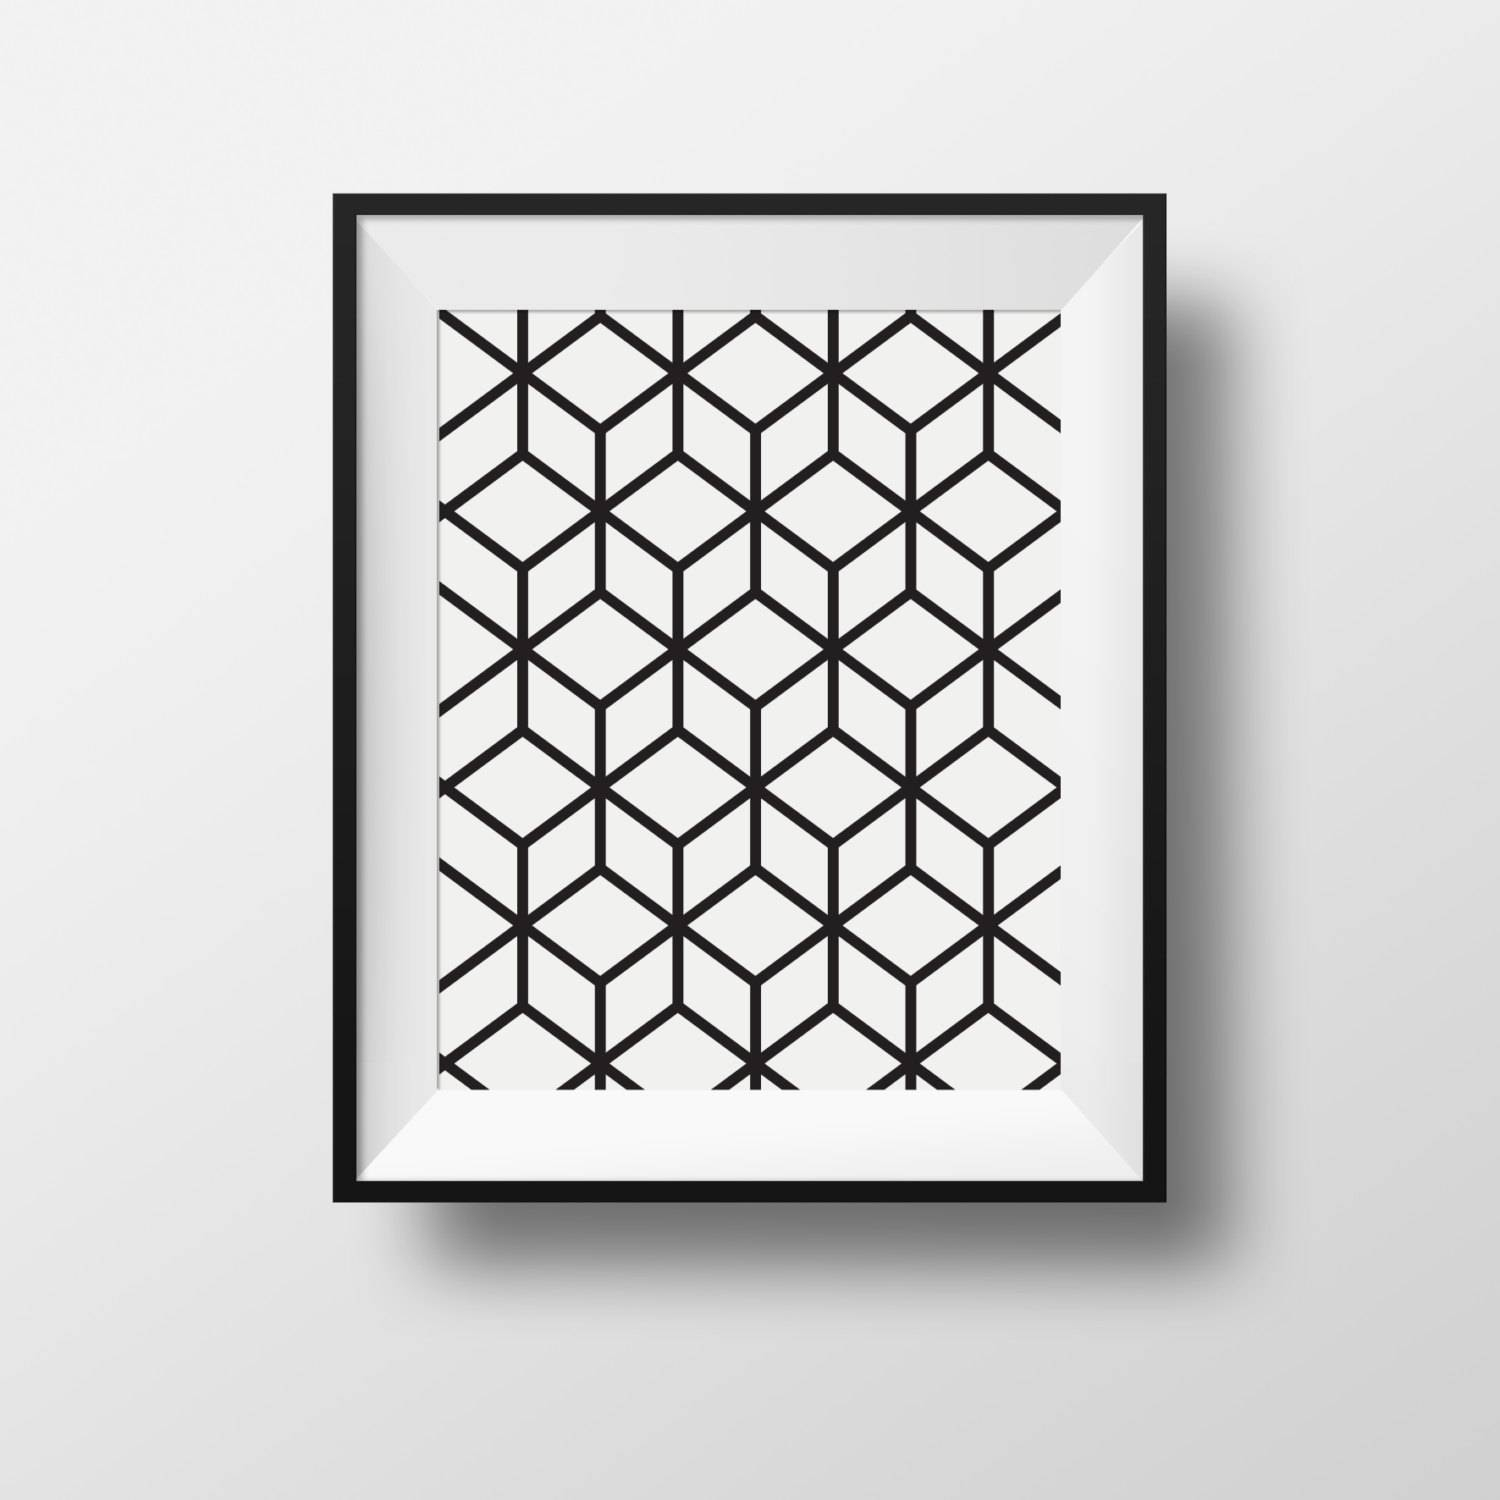 Wall Art Print Cubic Black And White Frame Ikea Ribba (View 8 of 16)